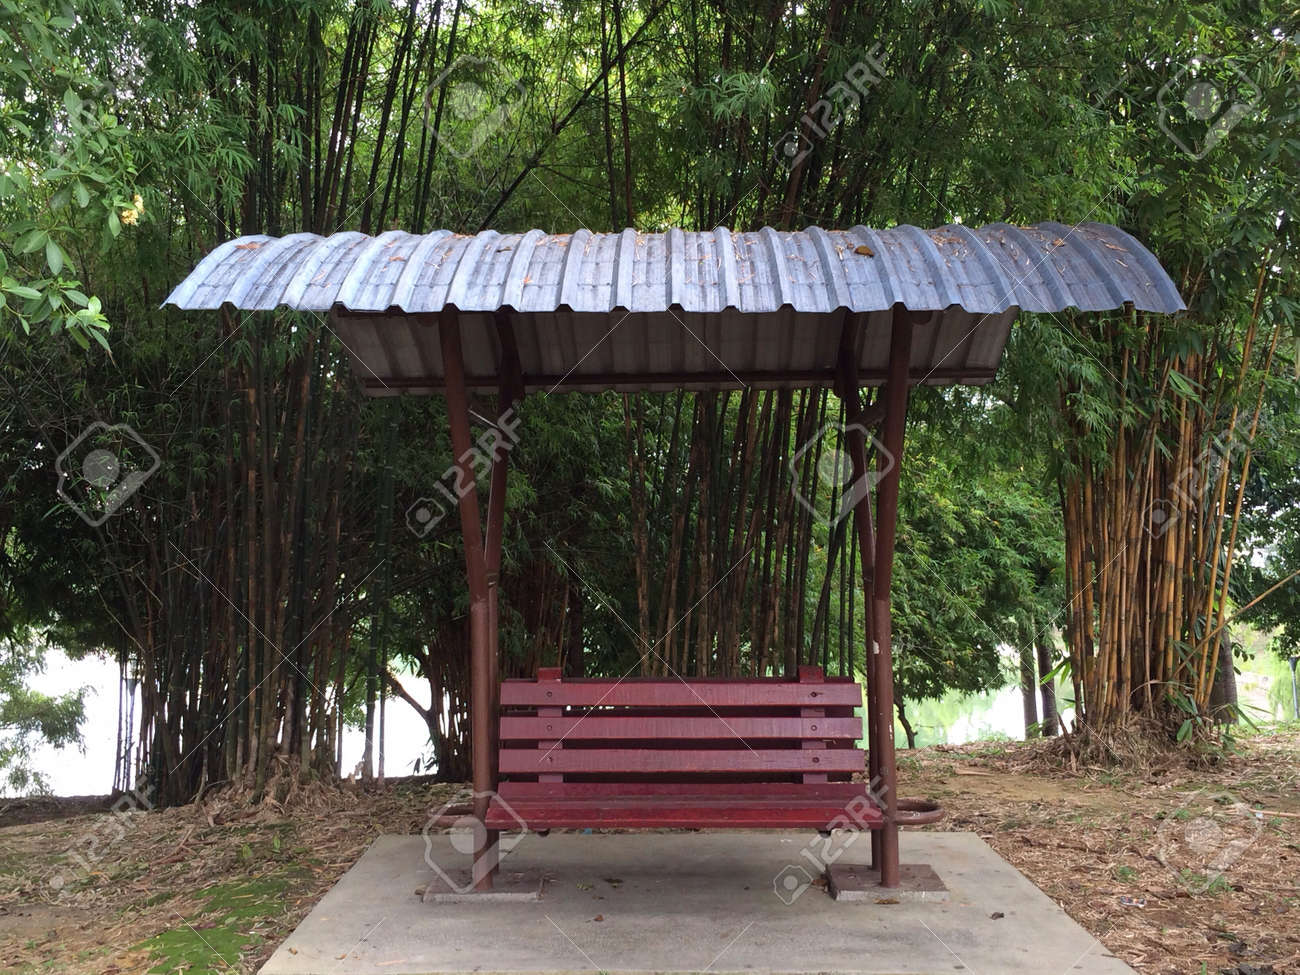 Park Bench With Bamboo In Back Stock Photo Picture And Royalty Free